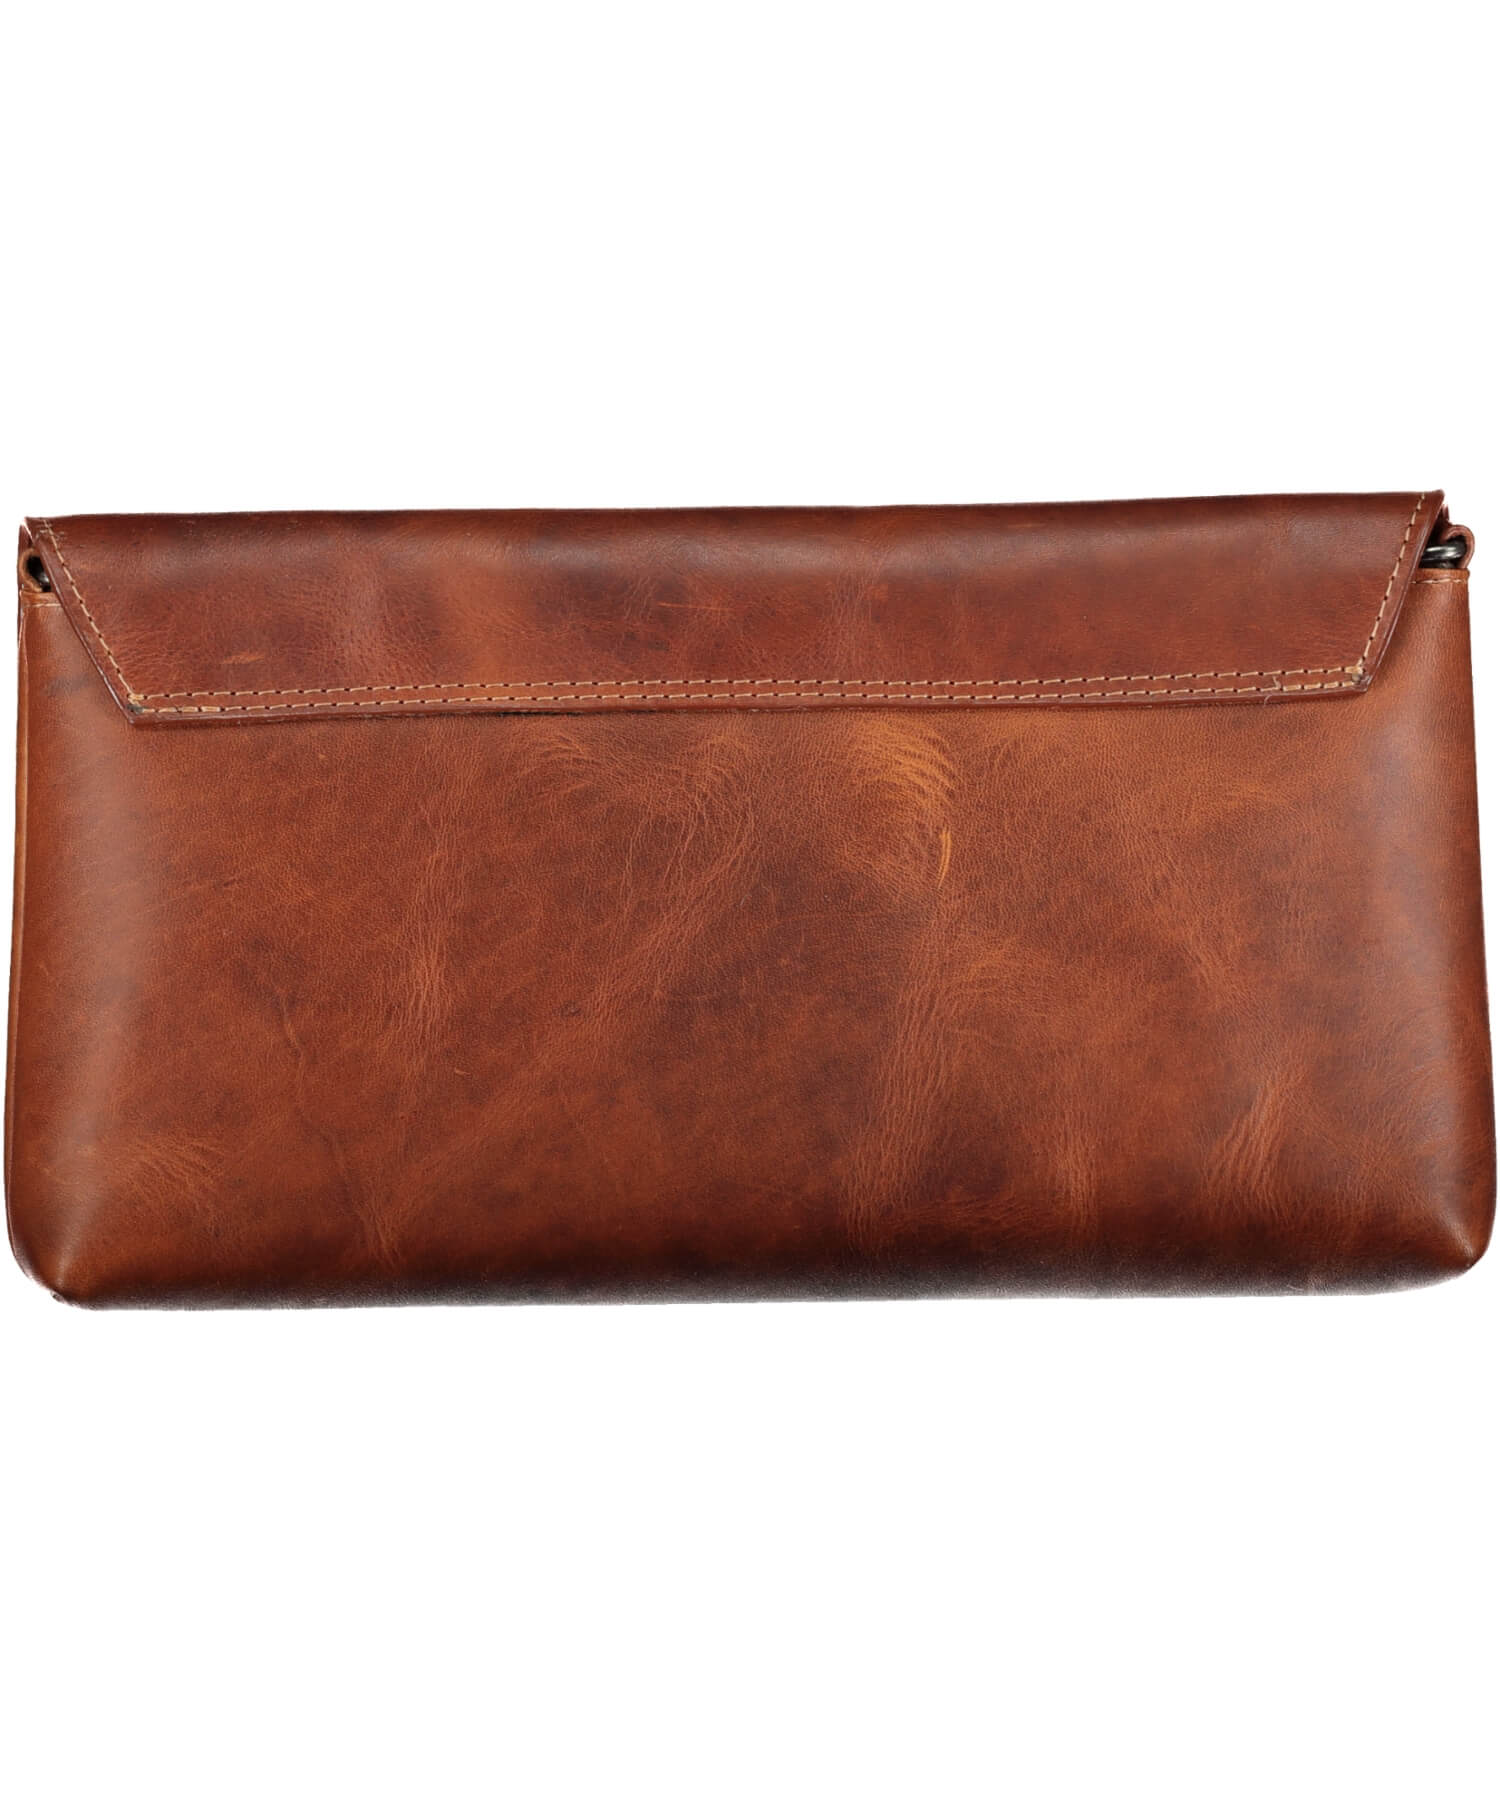 Ciara Clutch Bag - Tan - [Lee River] - Bags, Purses & Wallets - Irish Gifts